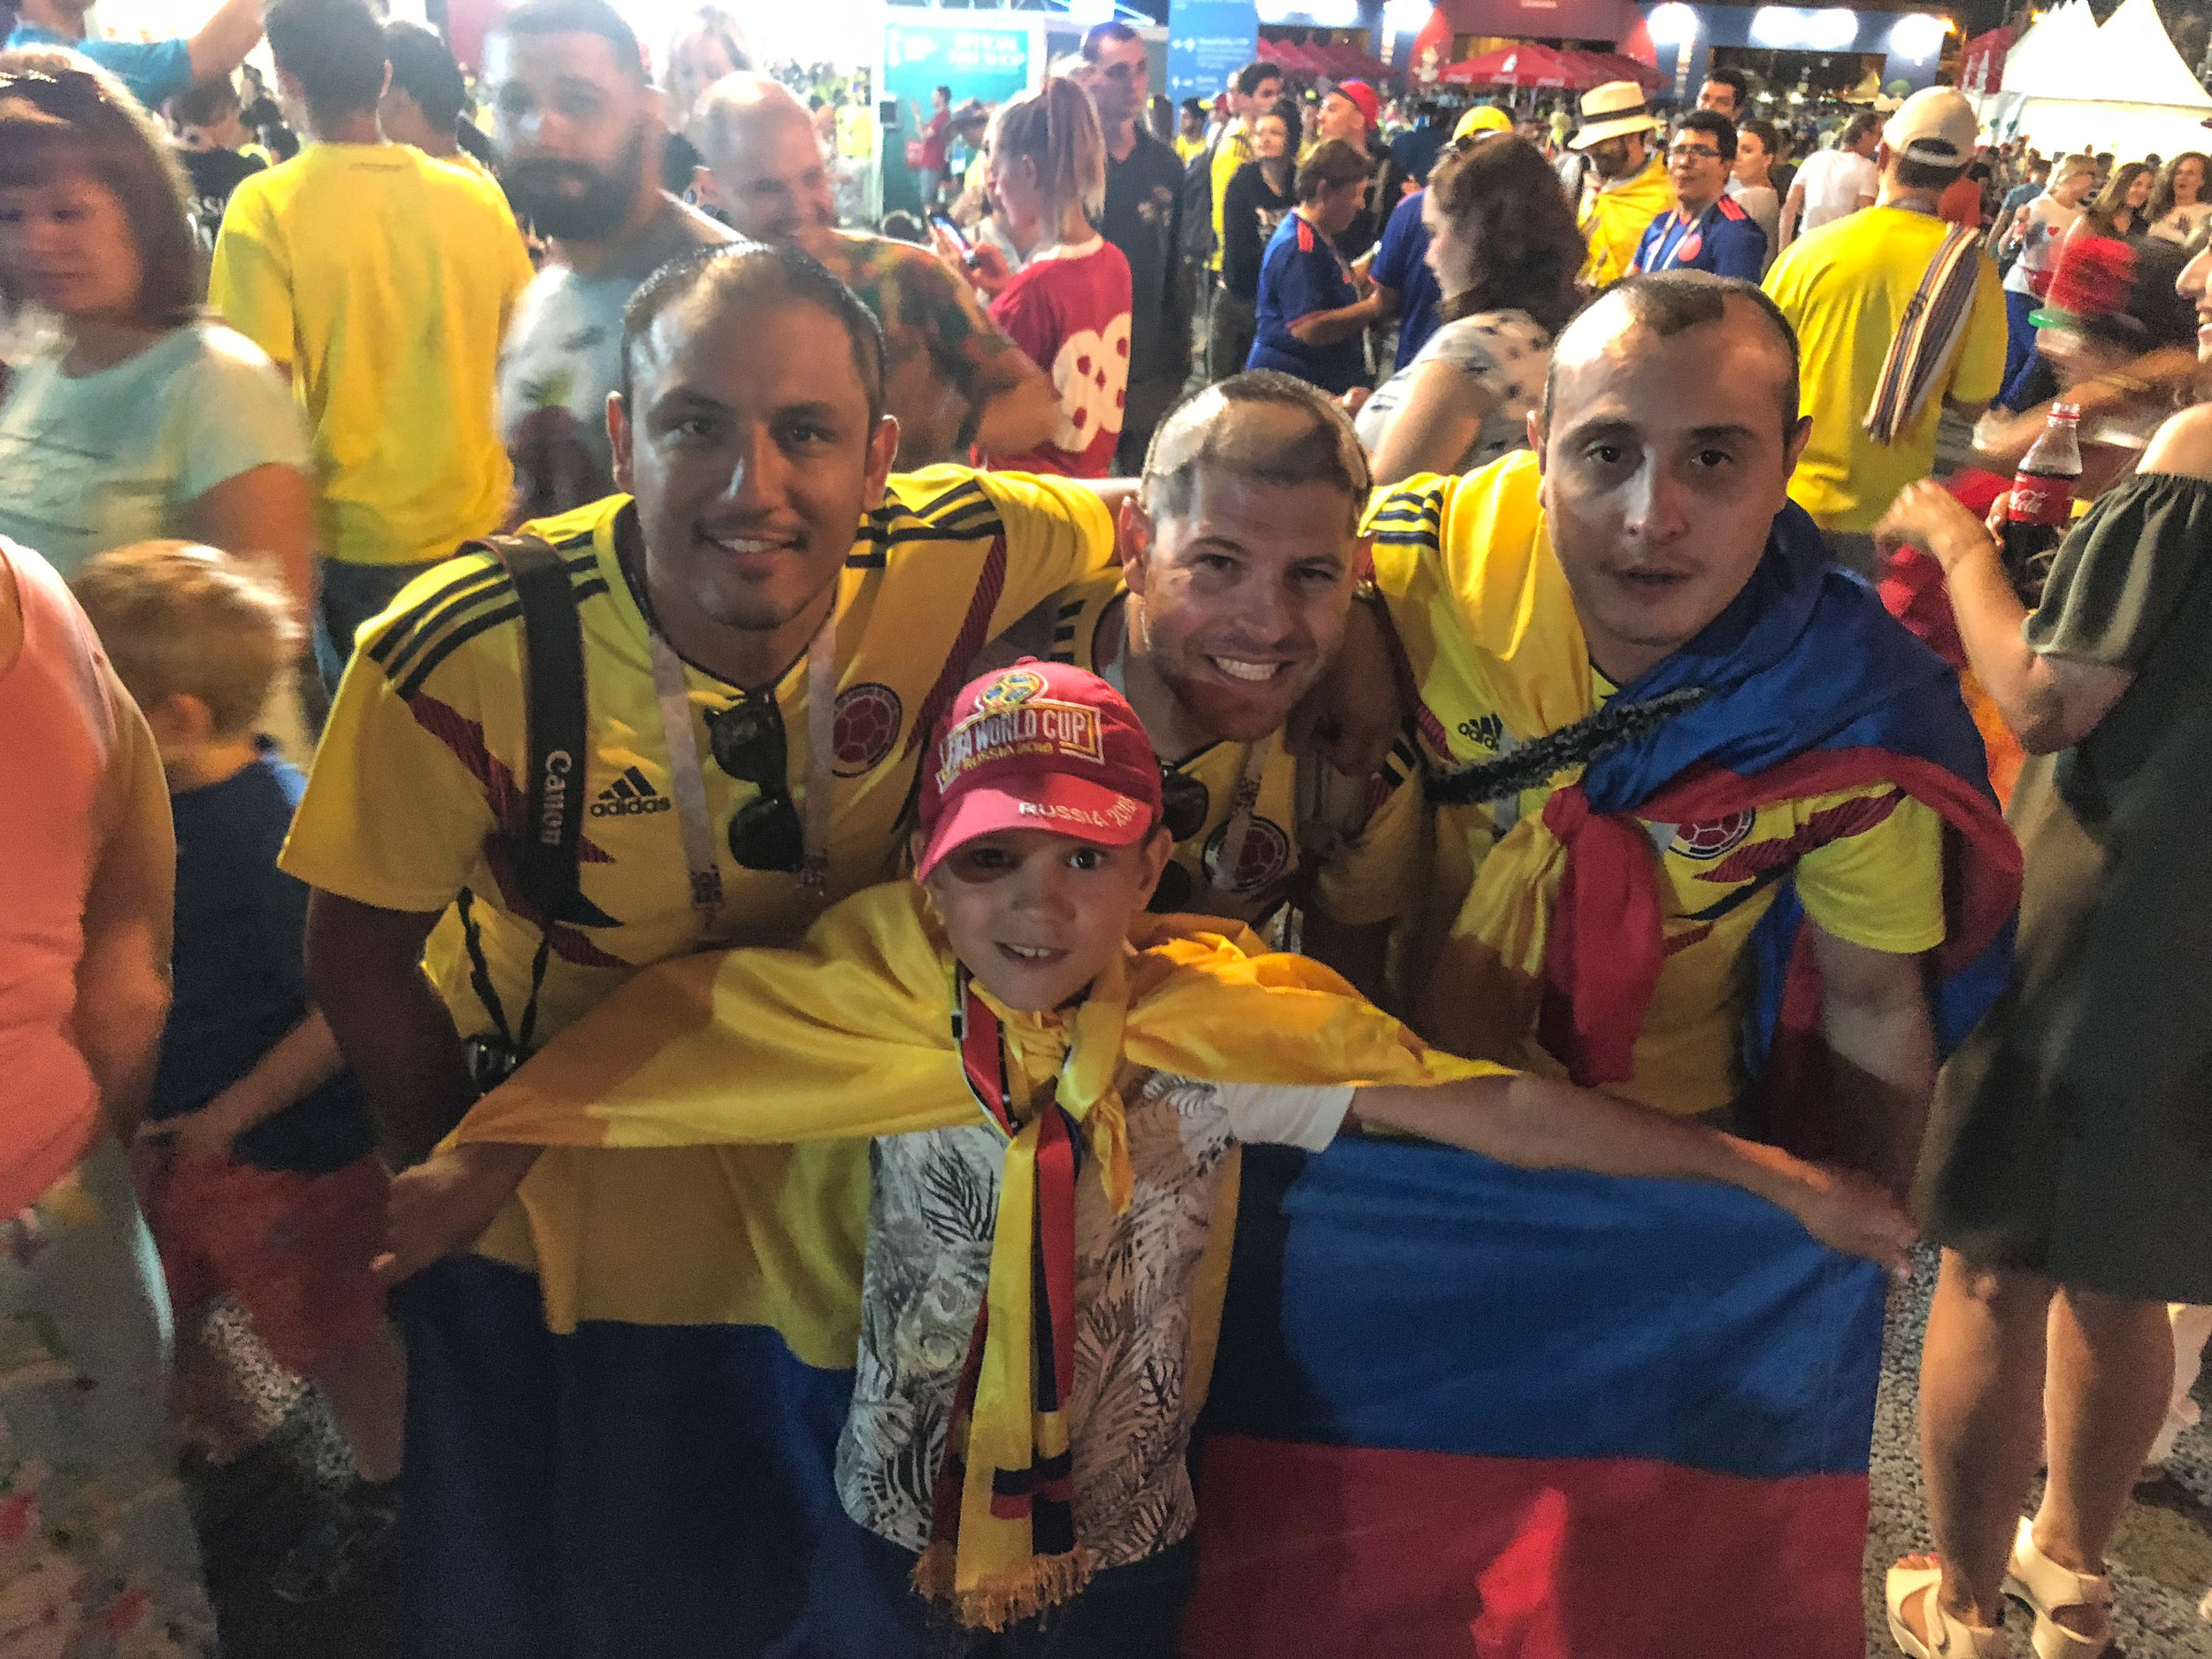 With the little Zhenia, the 8-year old Russian kid that we meet at the Fan Fest. Read more about his story  here .